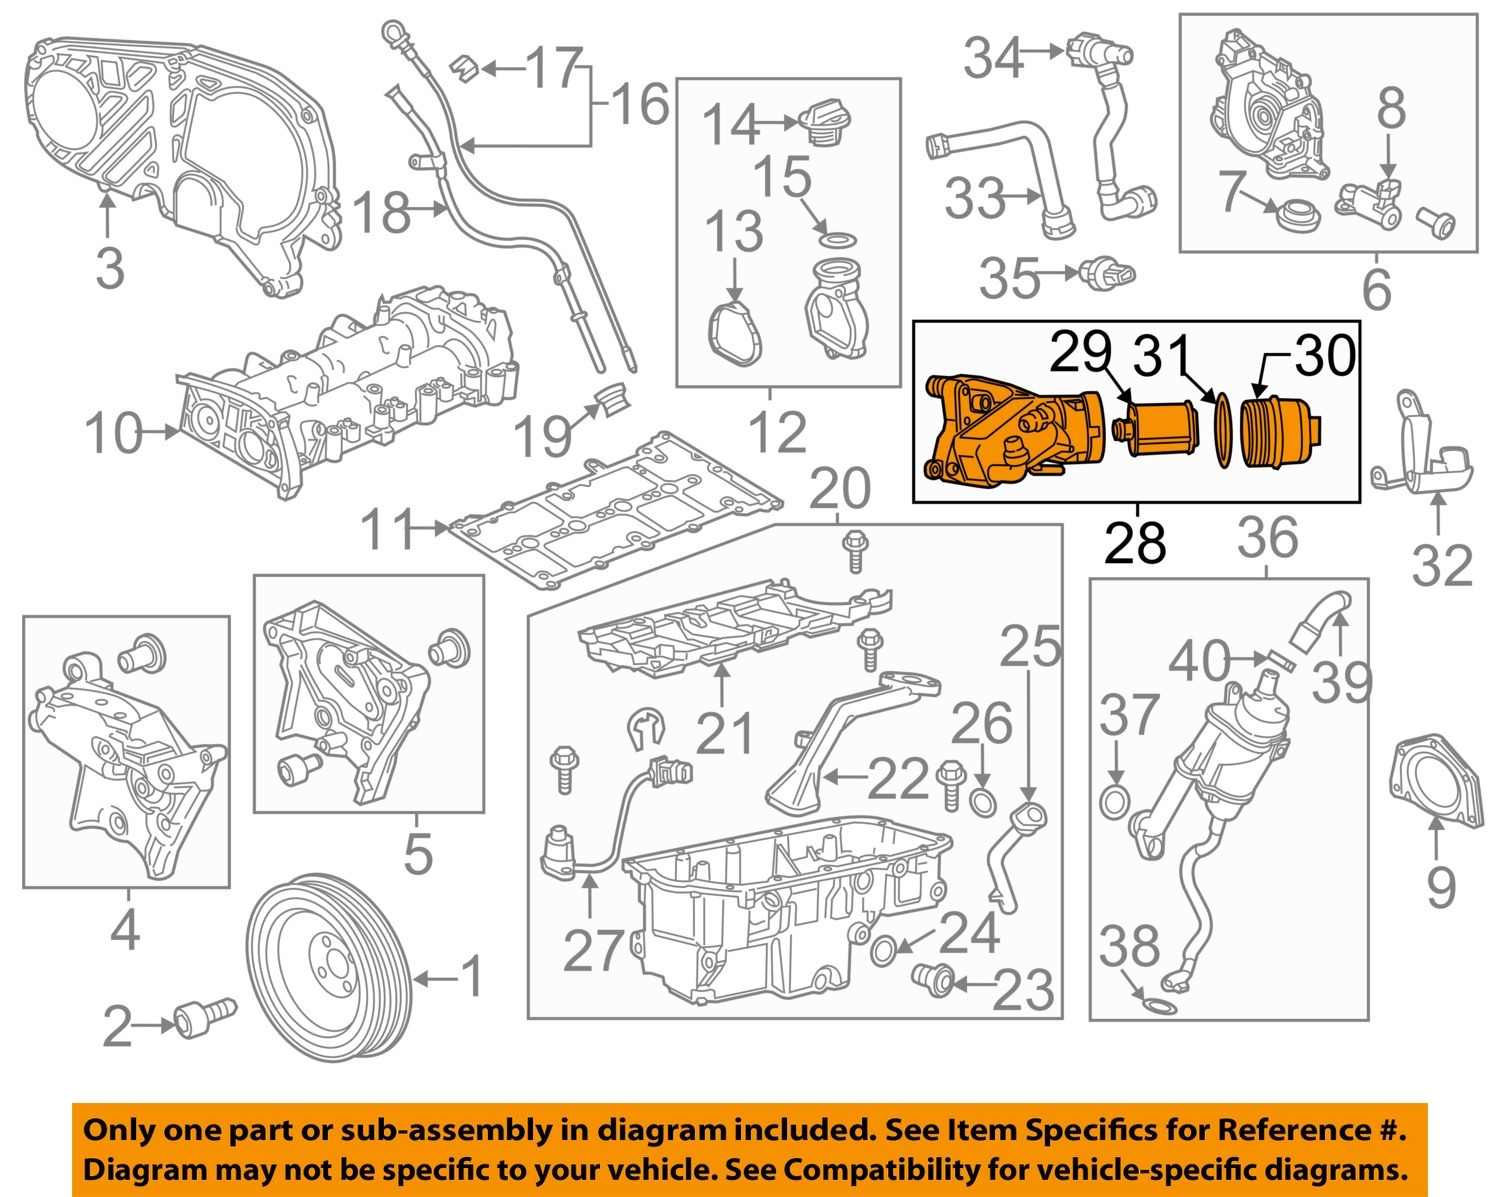 Moreover gm ecotec engine on chevy equinox interior fuse box diagram -  Gm Engine Parts Diagram Wire Chevy S Parts Diagrams Chevy Image Chevrolet Engine Parts Diagram Gm